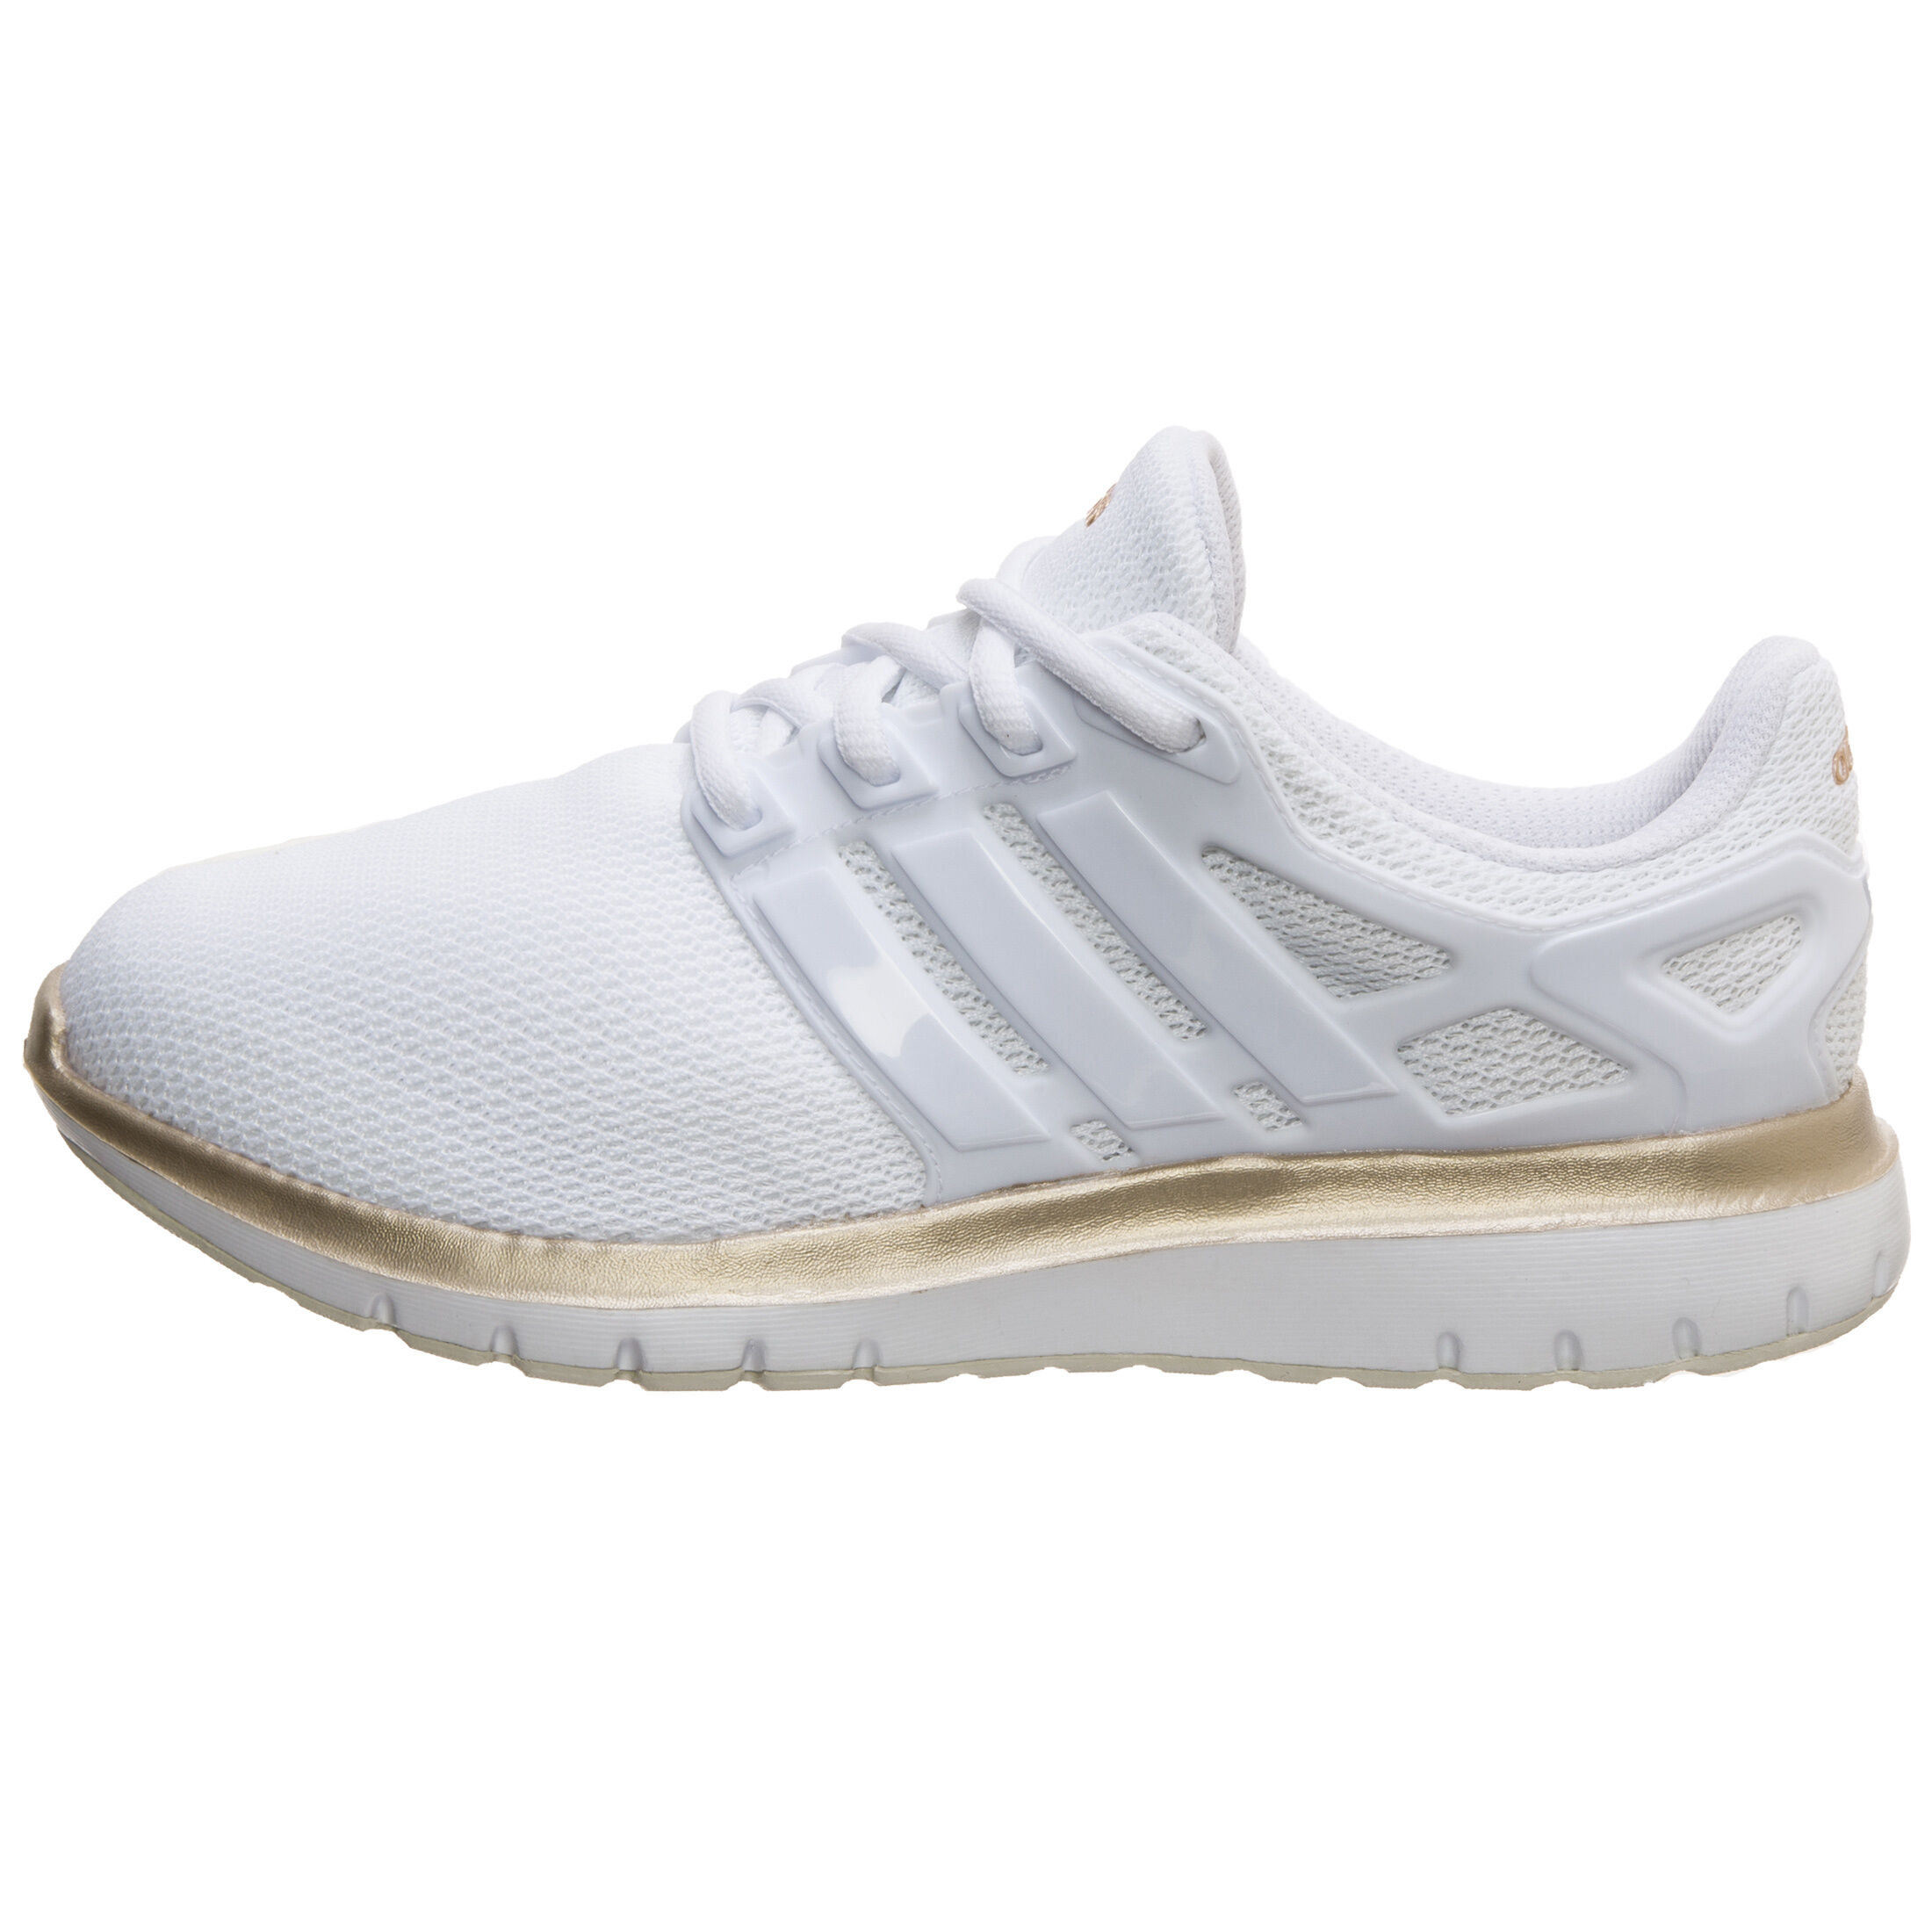 New Adidas Energy Cloud Wtc Neutral Running Shoes Midnight